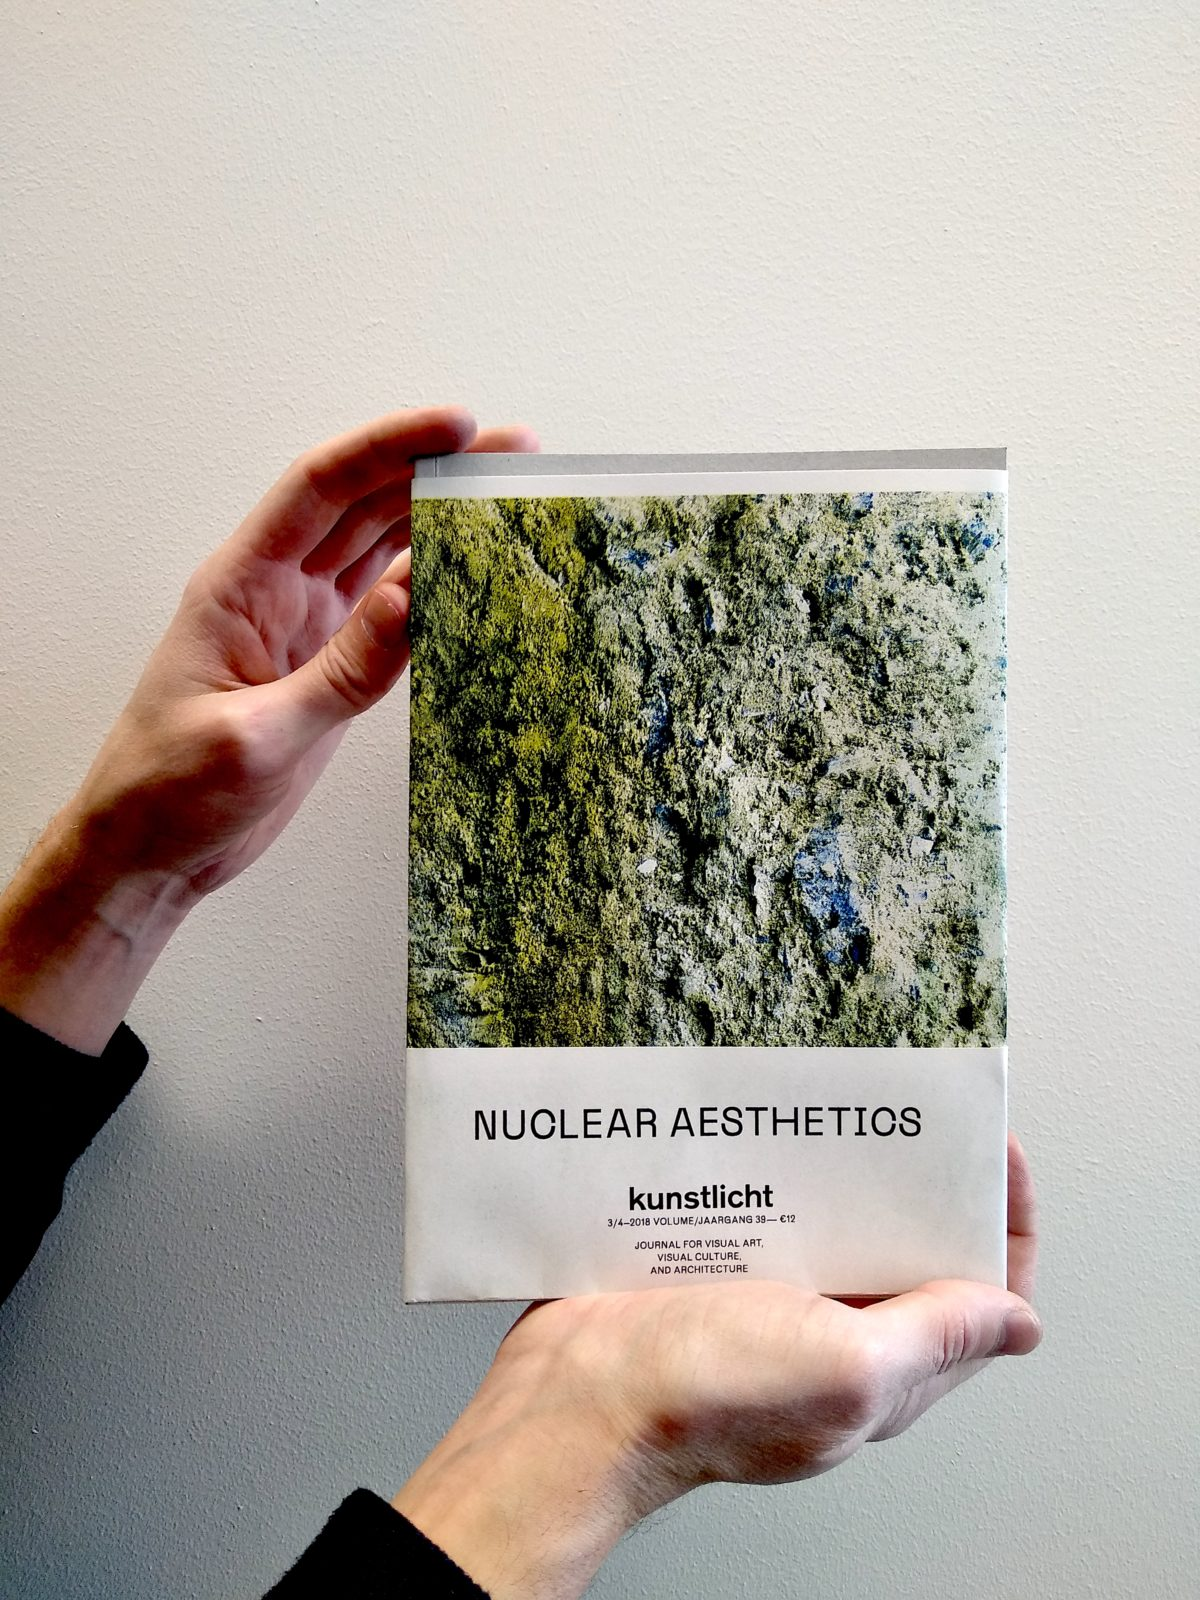 VOL. 39, NO 3/4, 2018, NUCLEAR AESTHETICS